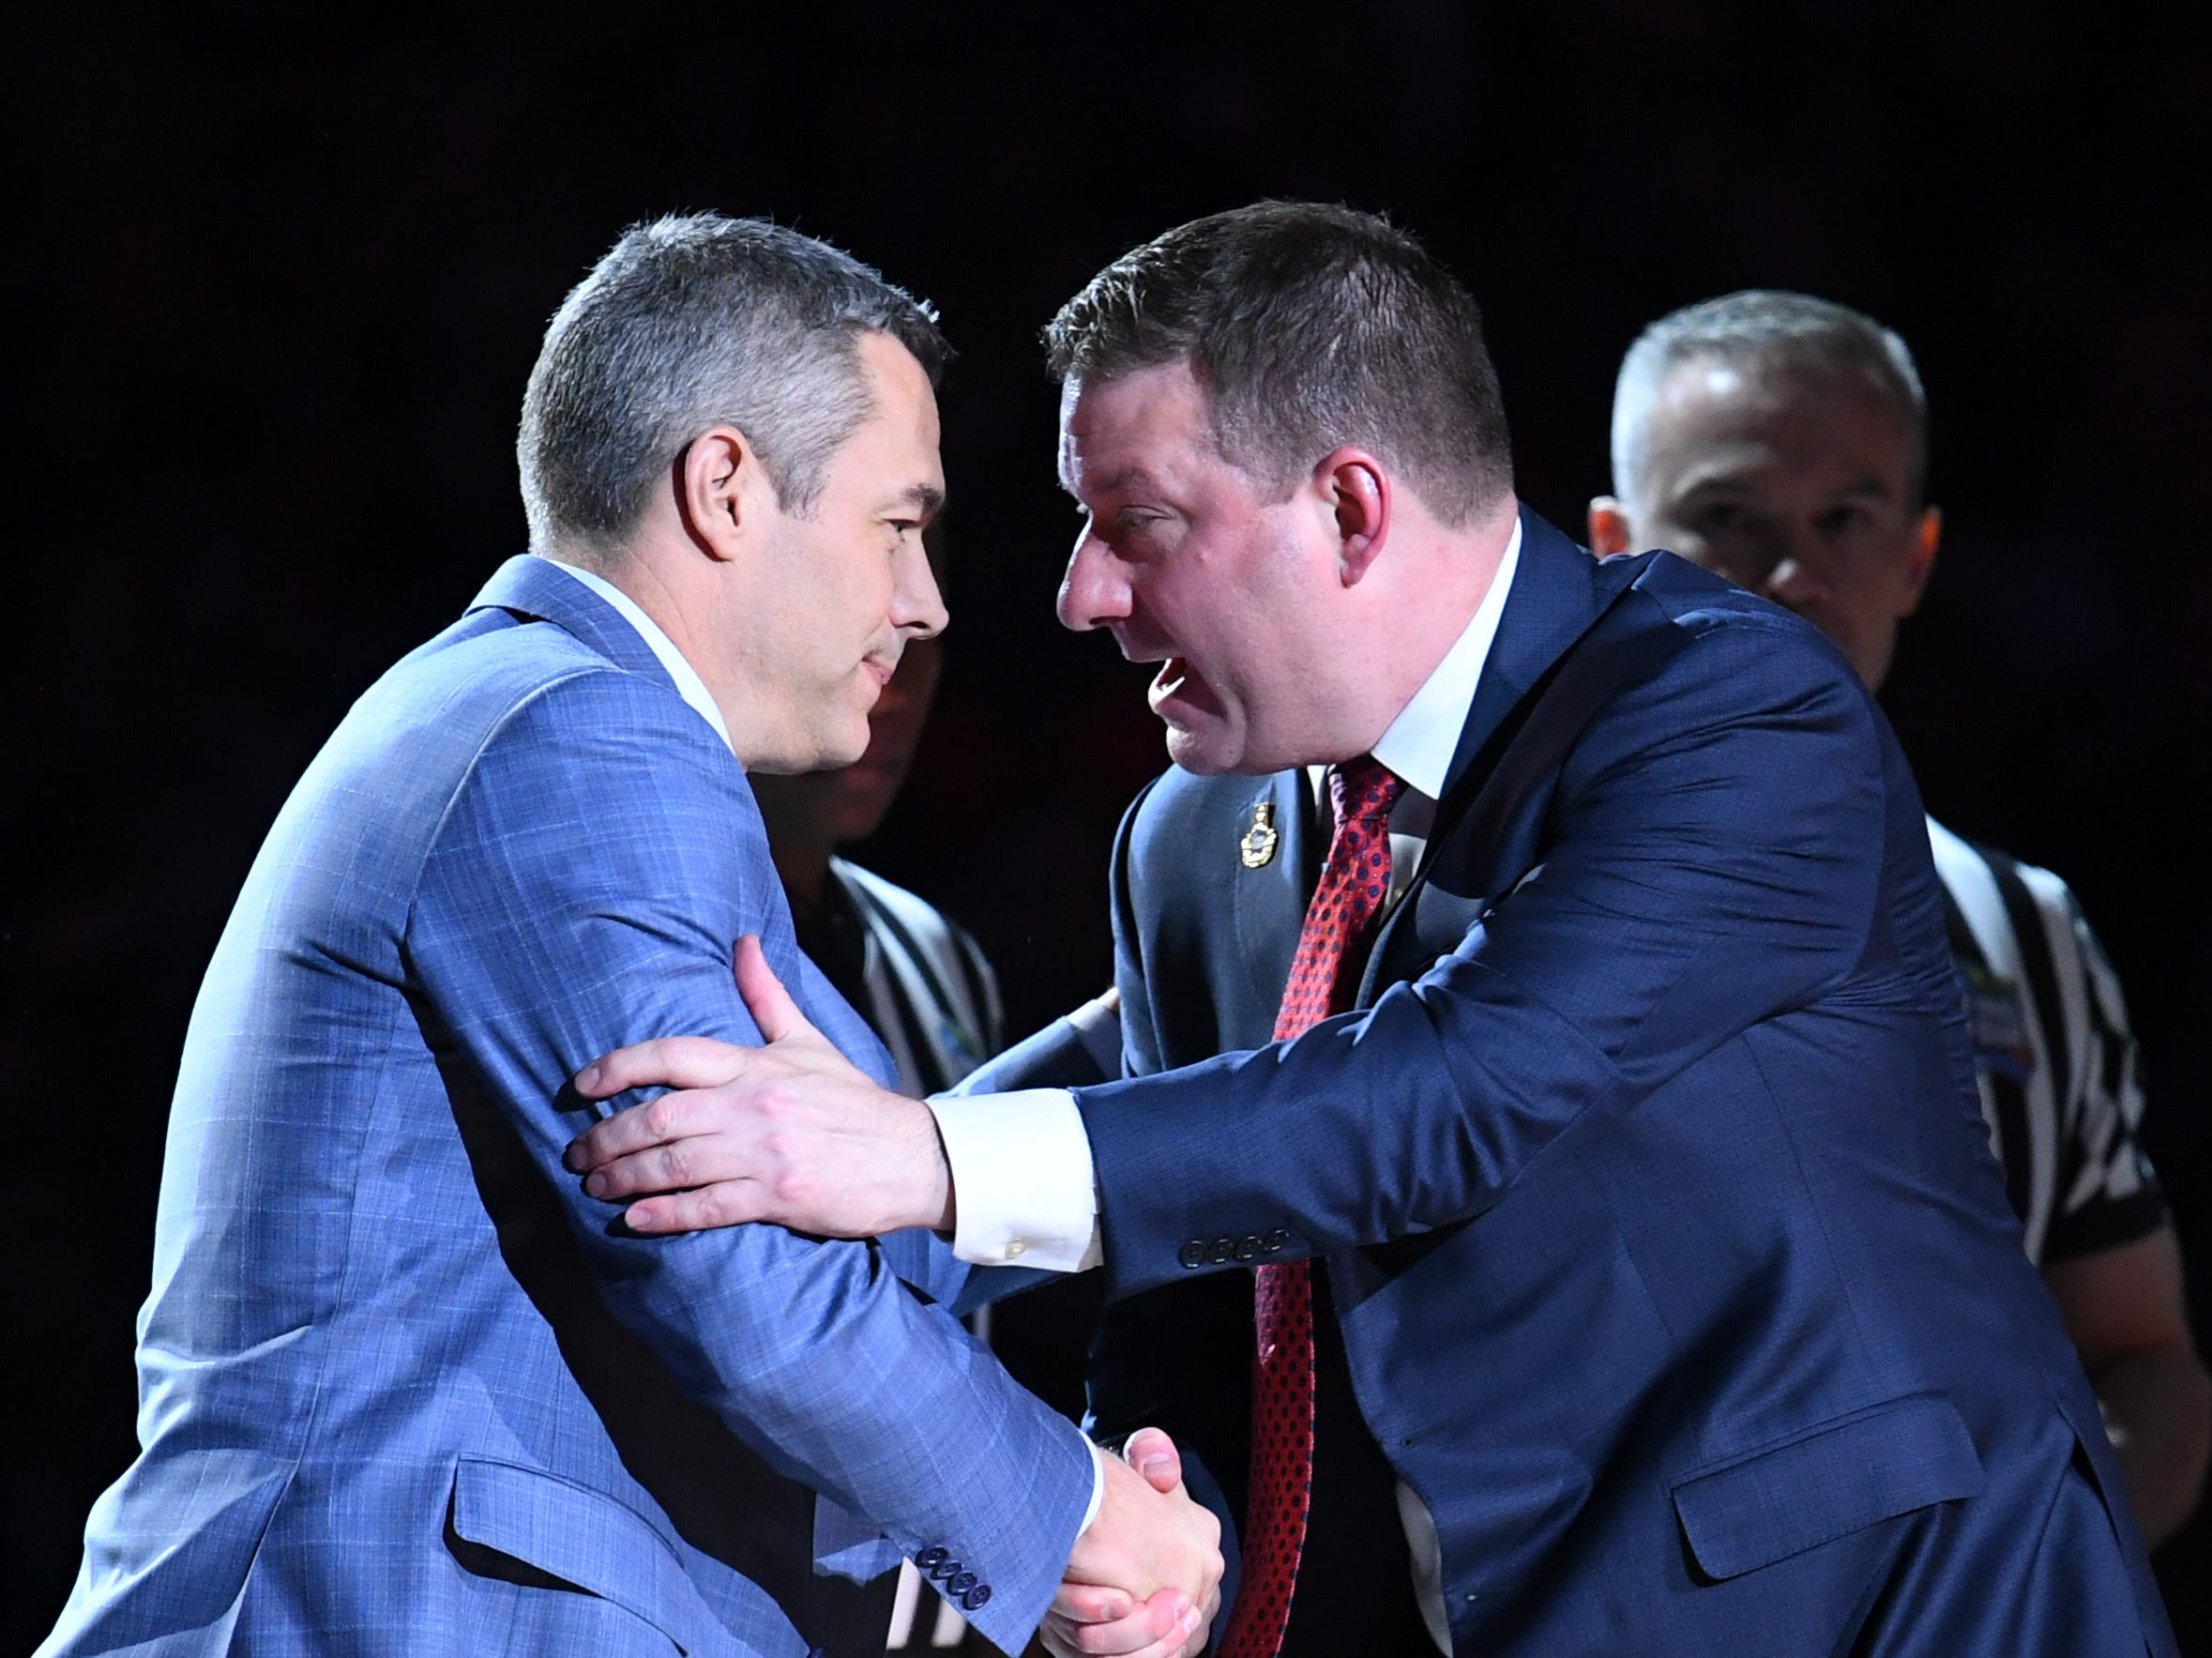 Apr 8, 2019; Minneapolis, MN, USA; Virginia Cavaliers head coach Tony Bennett (left) and Texas Tech Red Raiders head coach Chris Beard (right) shake hands prior to the start of the championship game of the 2019 men's Final Four at US Bank Stadium. Mandatory Credit: Robert Deutsch-USA TODAY Sports